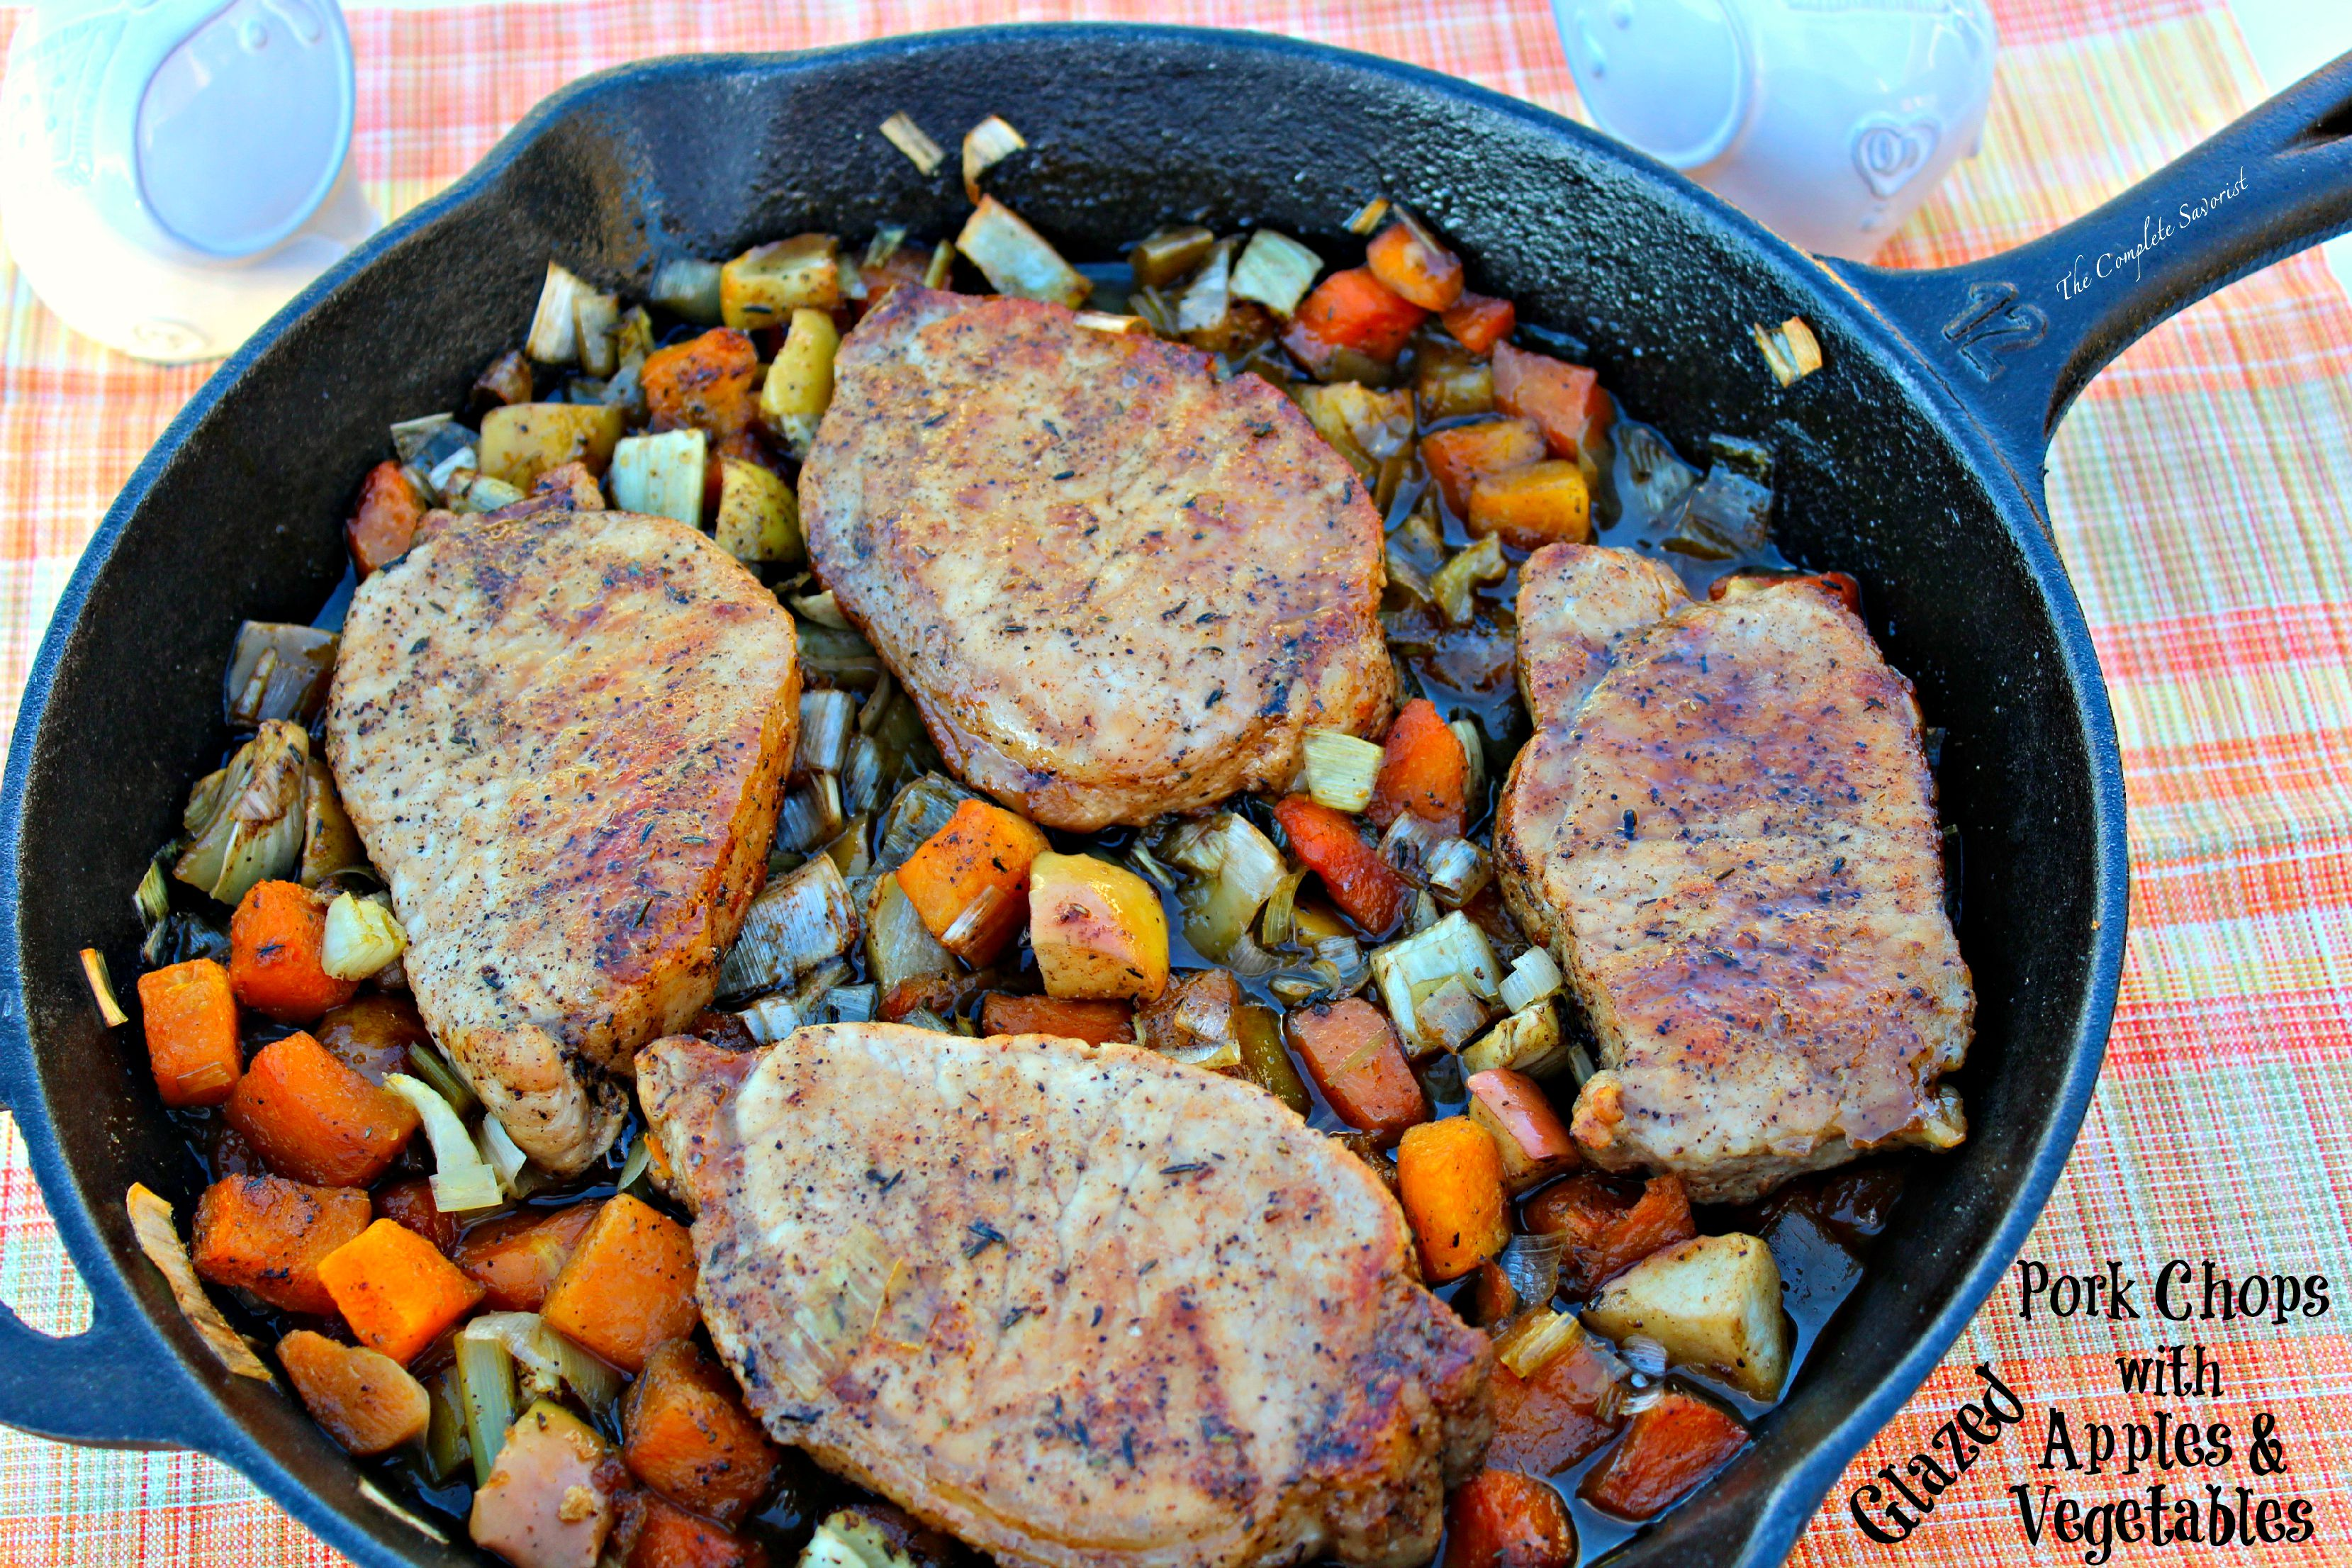 Pork Chops with Glazed Apples and Vegetables